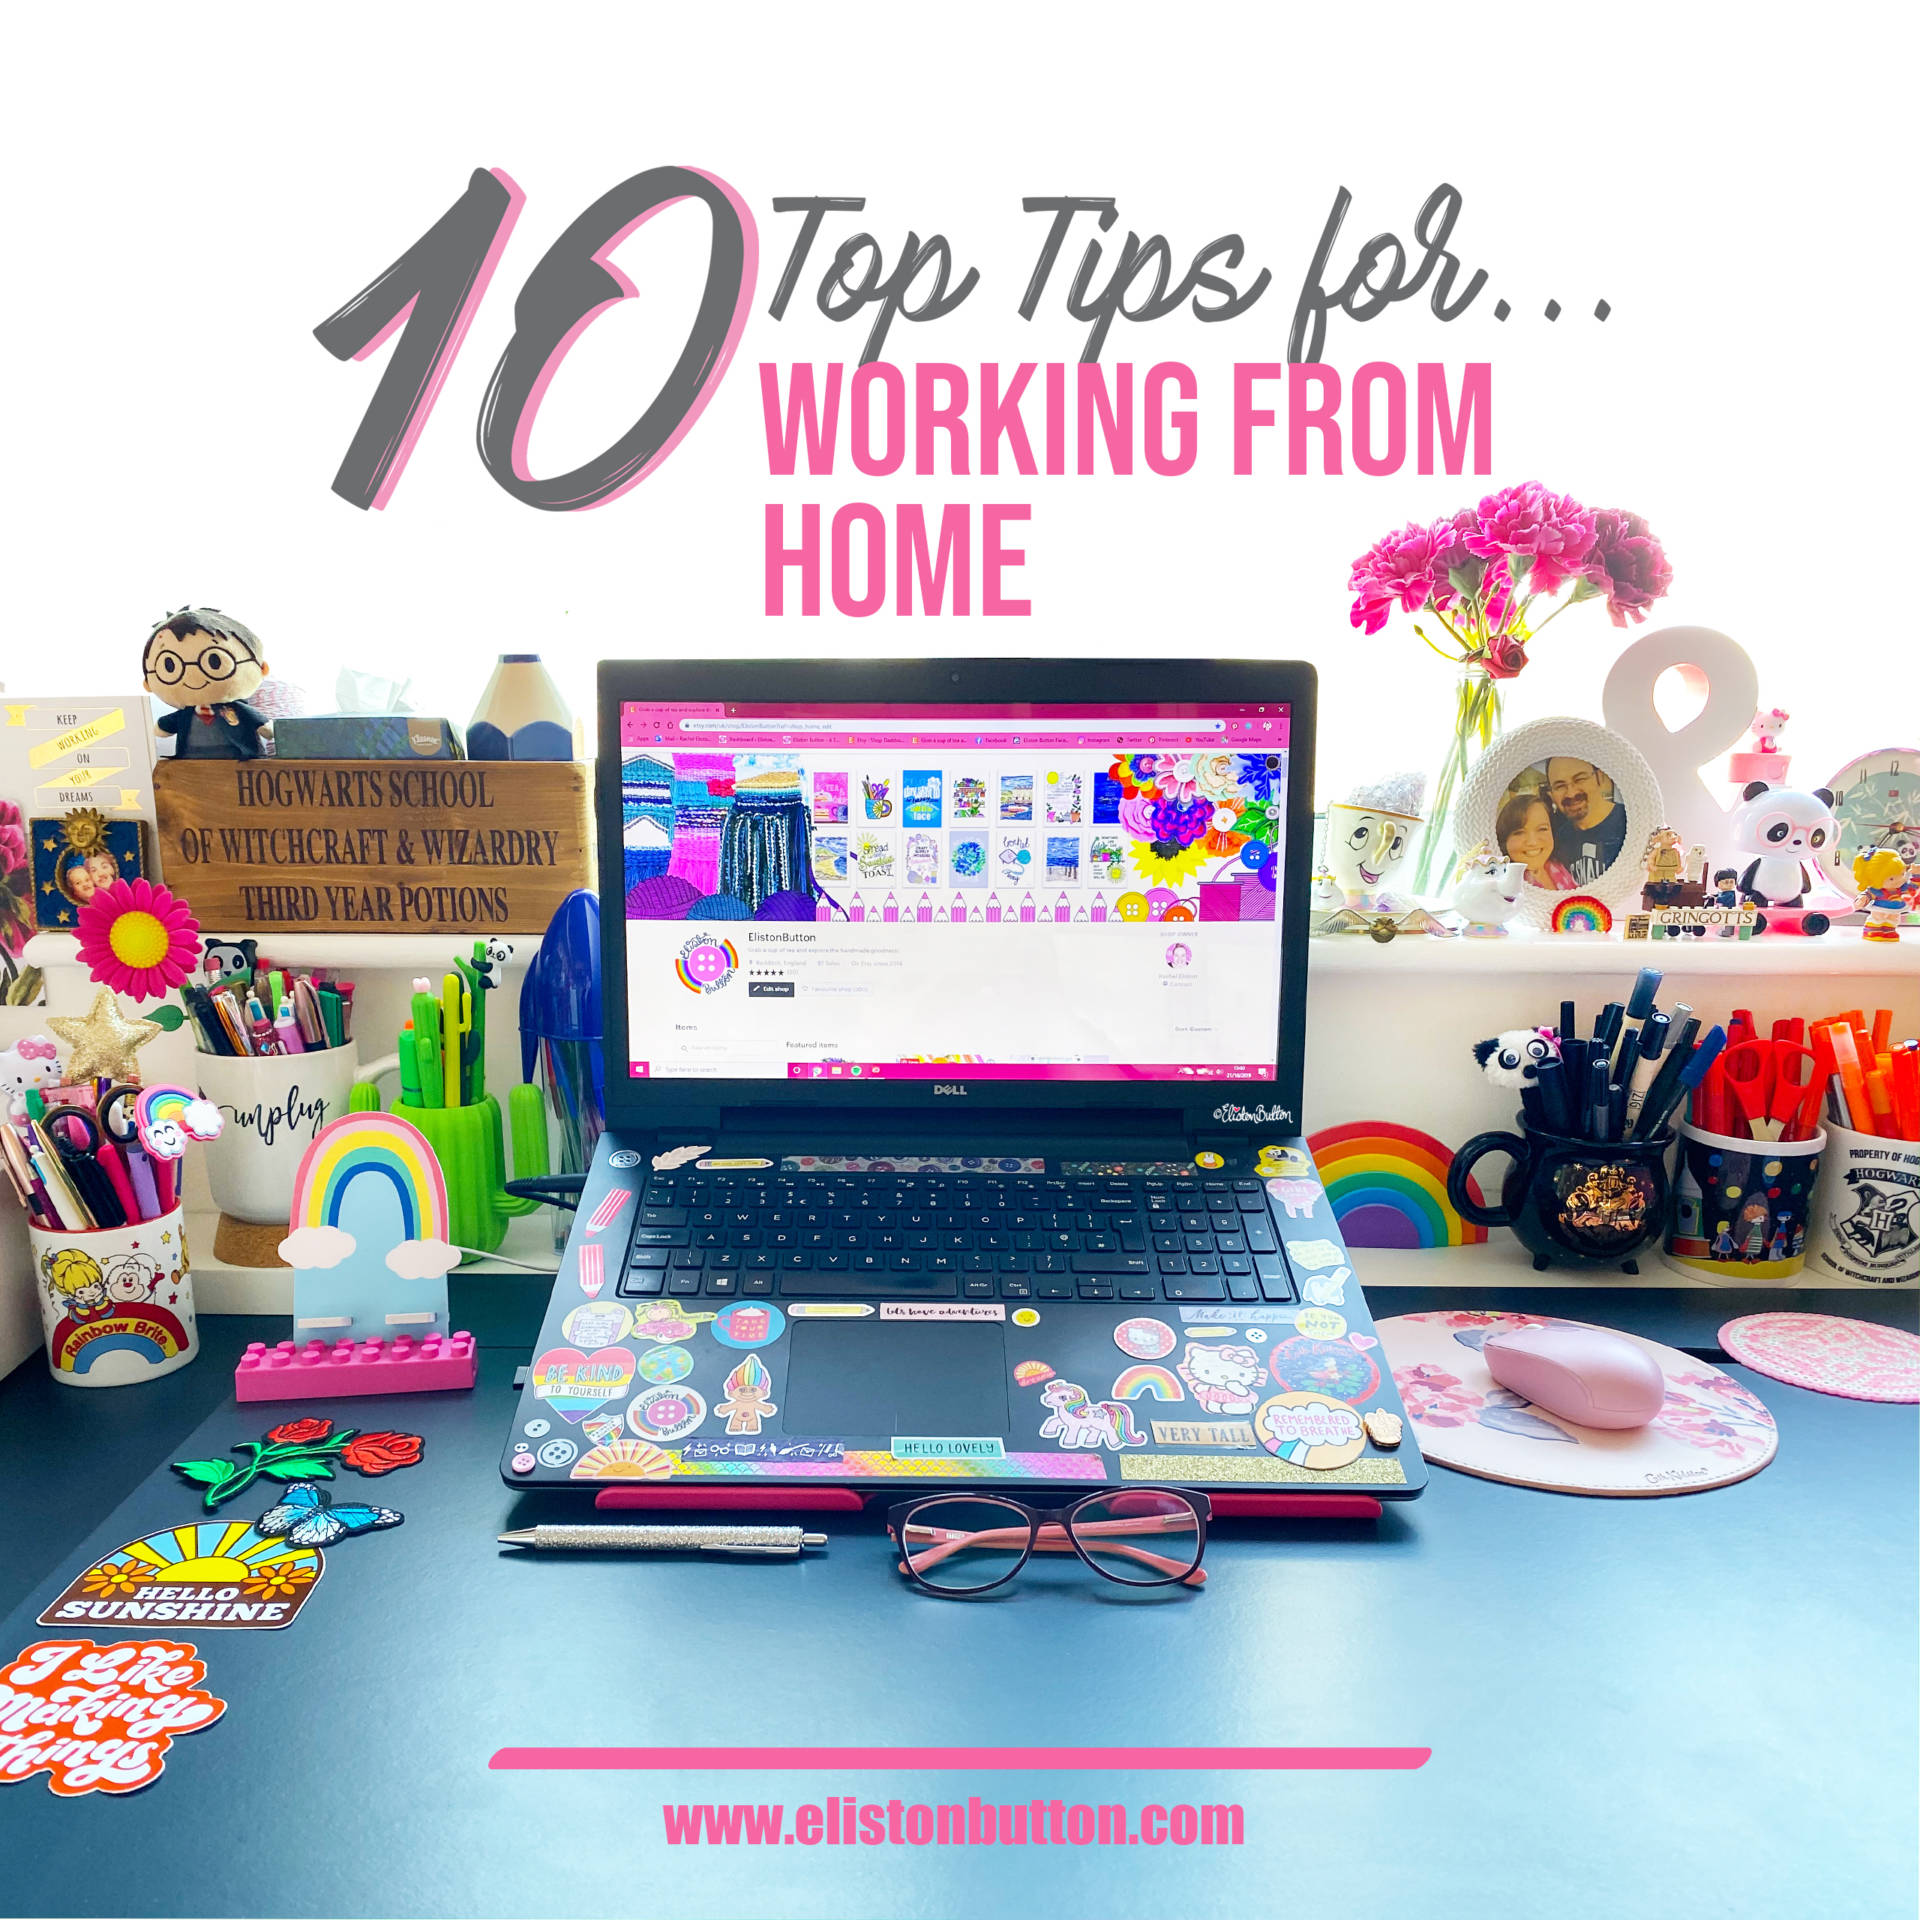 Ten Top Tips for…Working from Home at www.elistonbutton.com - Eliston Button - A Treasure Trove of Creativity, Colour and Adventure.